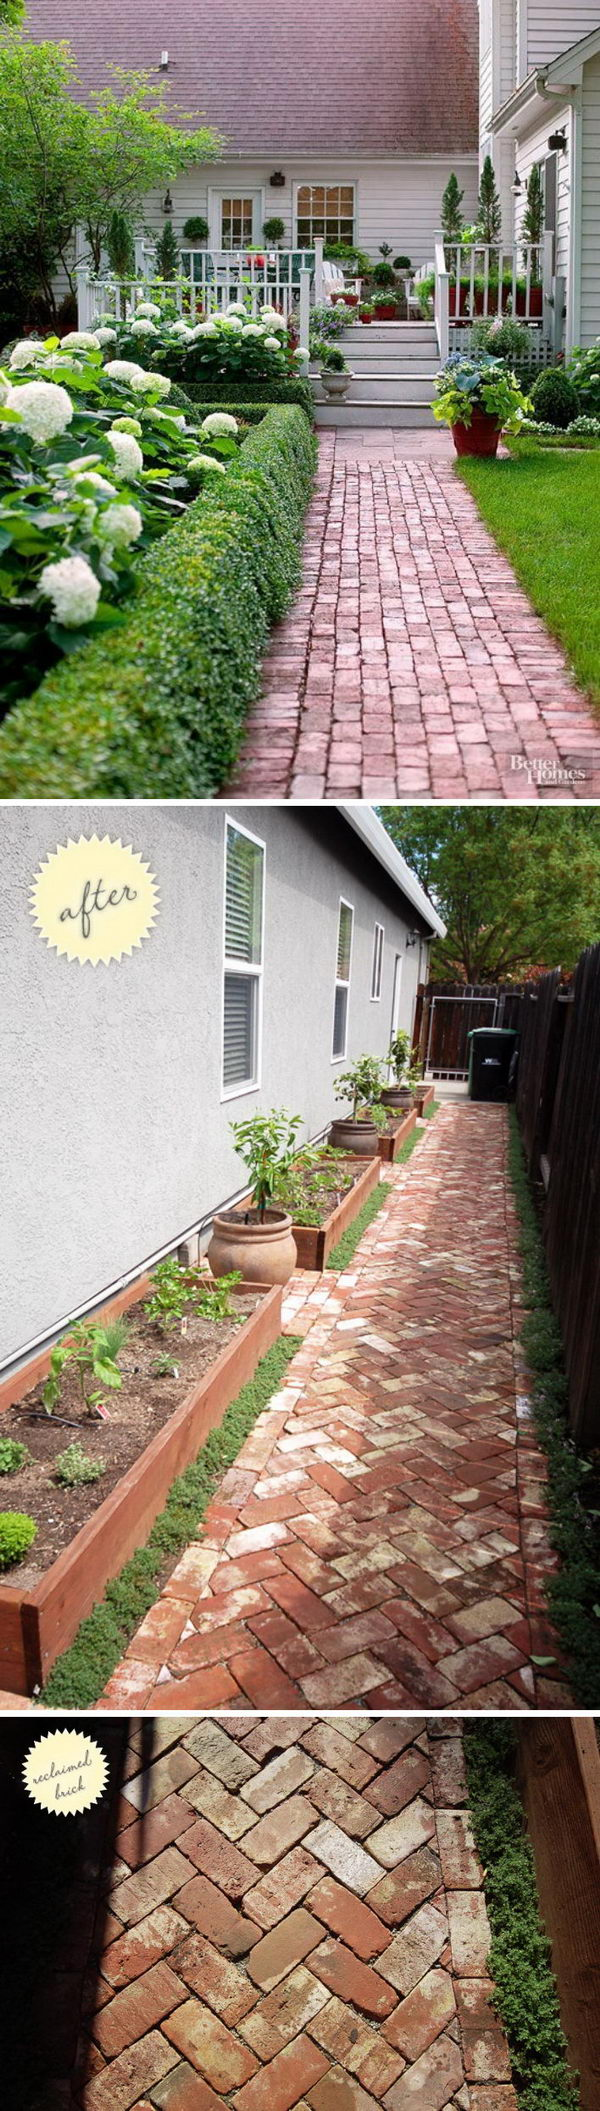 Lay a Front Entry Brick Walkway.